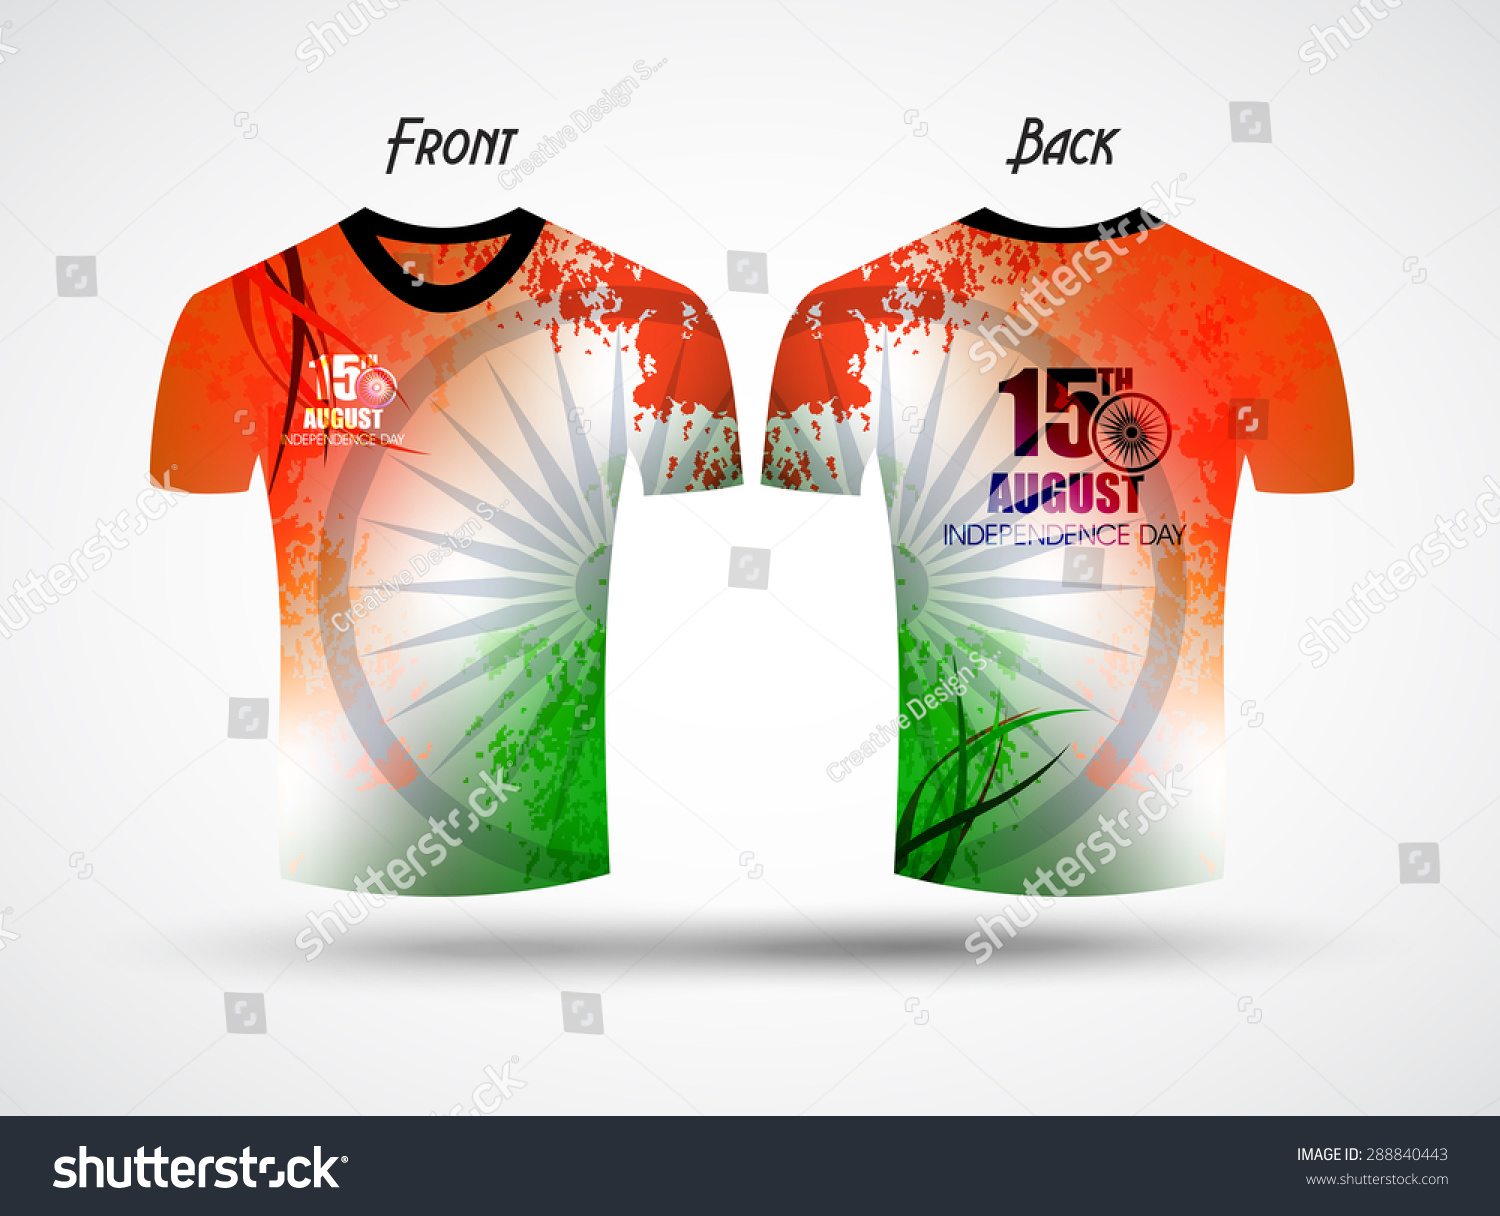 Create Custom T Shirt India Bcd Tofu House